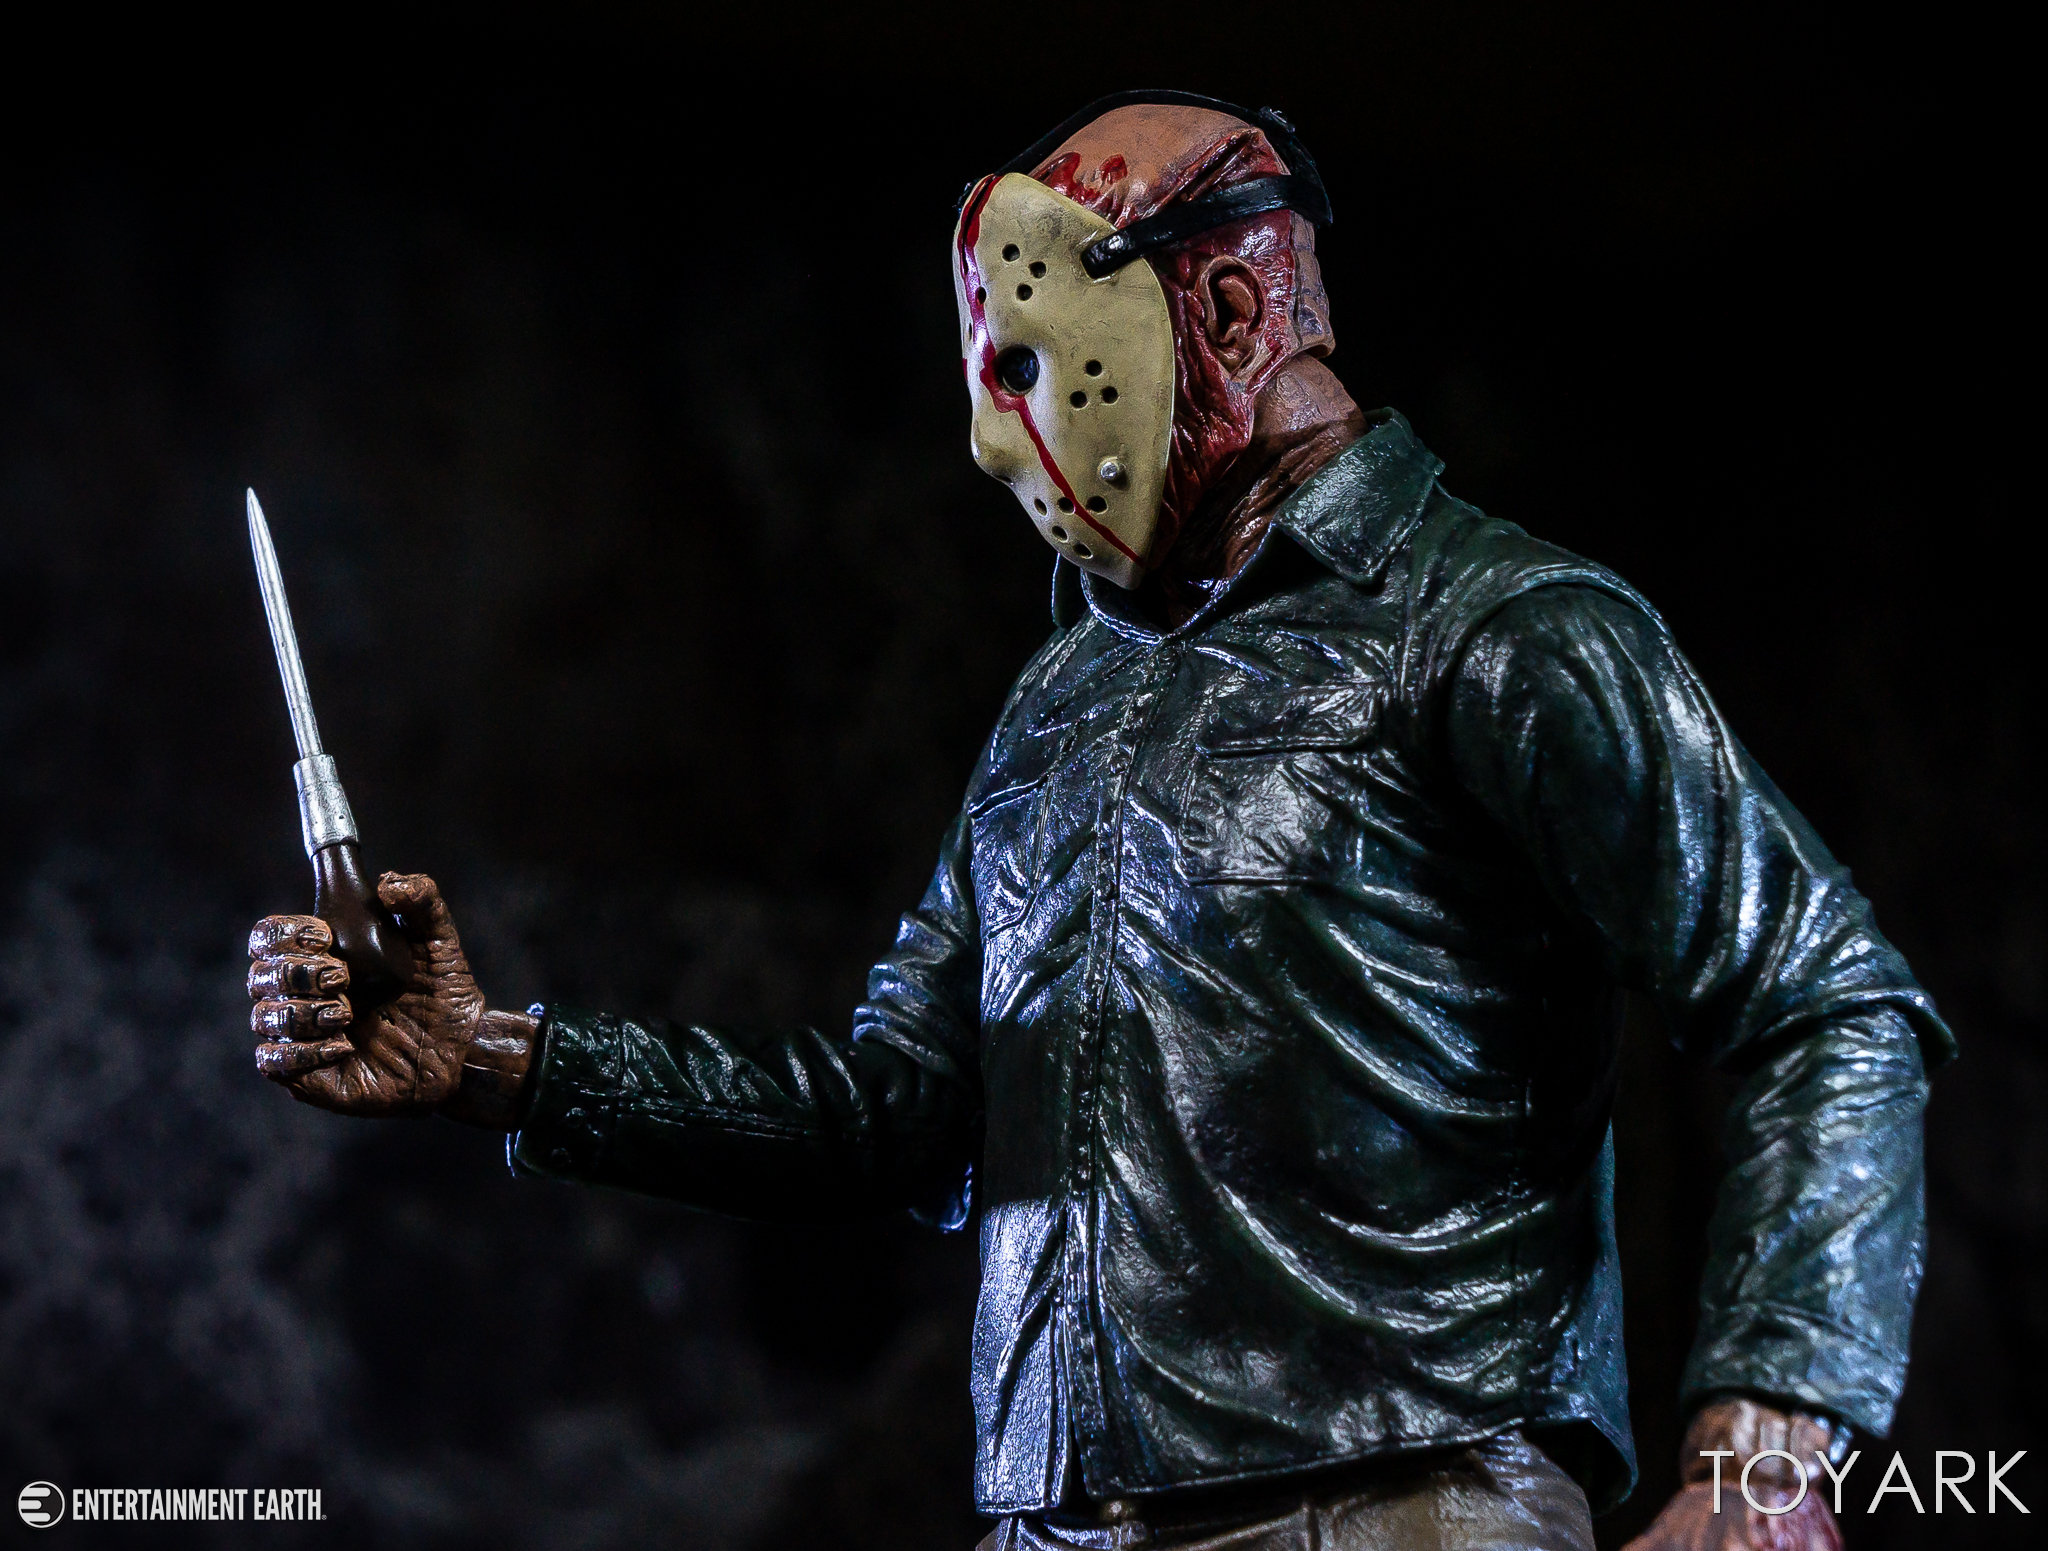 https://news.toyark.com/wp-content/uploads/sites/4/2018/10/NECA-Ultimate-Dream-Jason-044.jpg